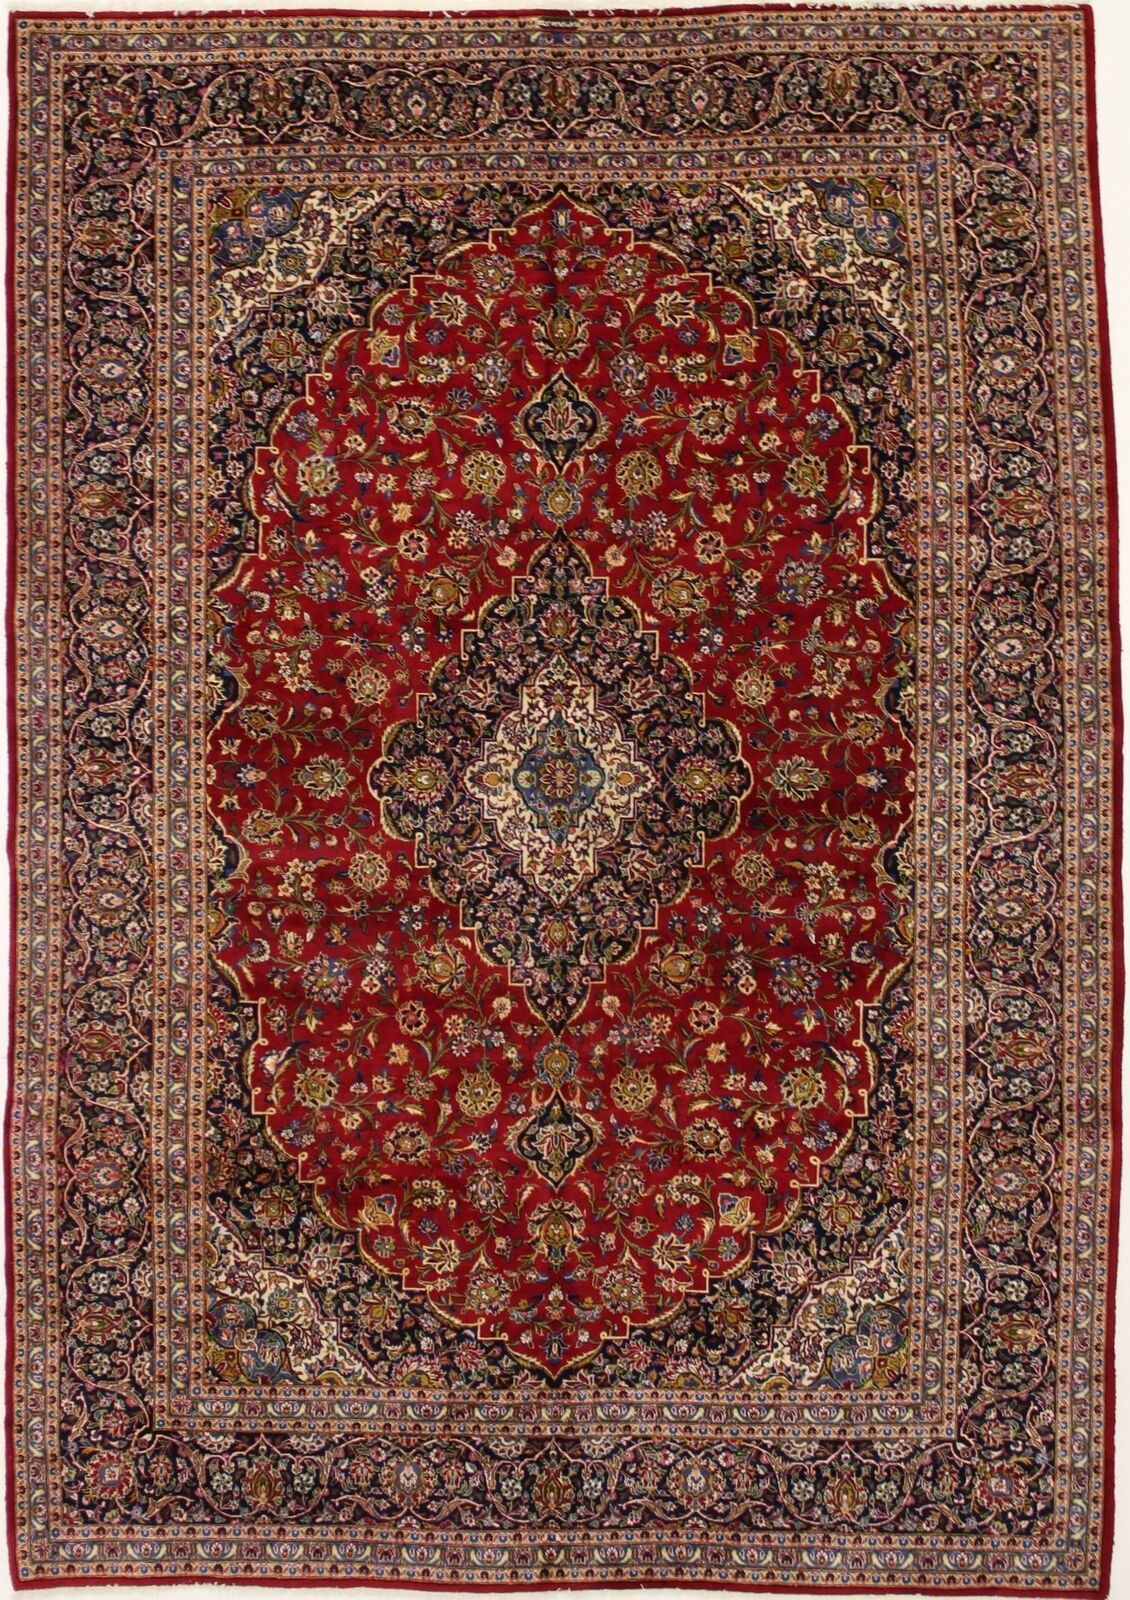 Traditional Classic Design 10x14 Wool Handmade Oriental Rug Home Decor Carpet Kitchen Sofa Ideas Of Kitchen Sofa Ki In 2020 Wool Area Rugs Rugs Cleaning Area Rugs